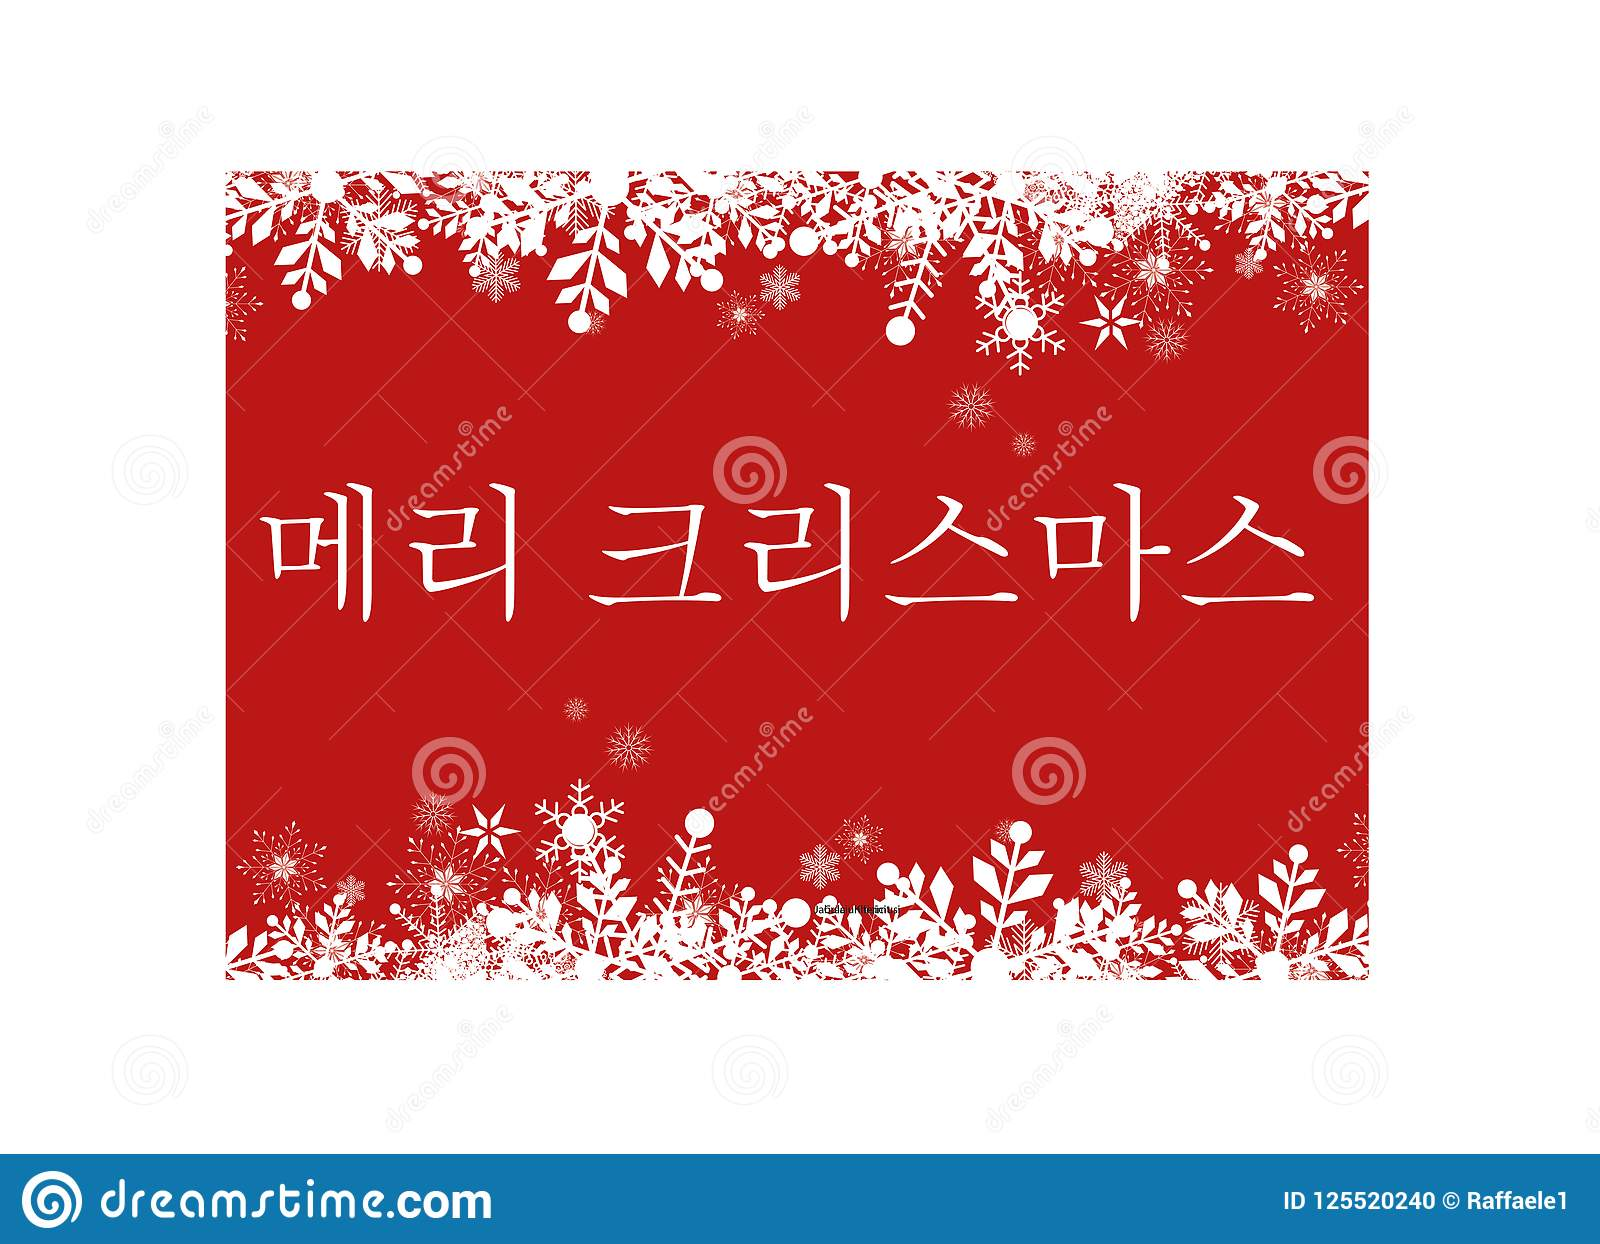 Merry Christmas In Korean.Red Merry Christmas In Korean Greeting Card For Web And